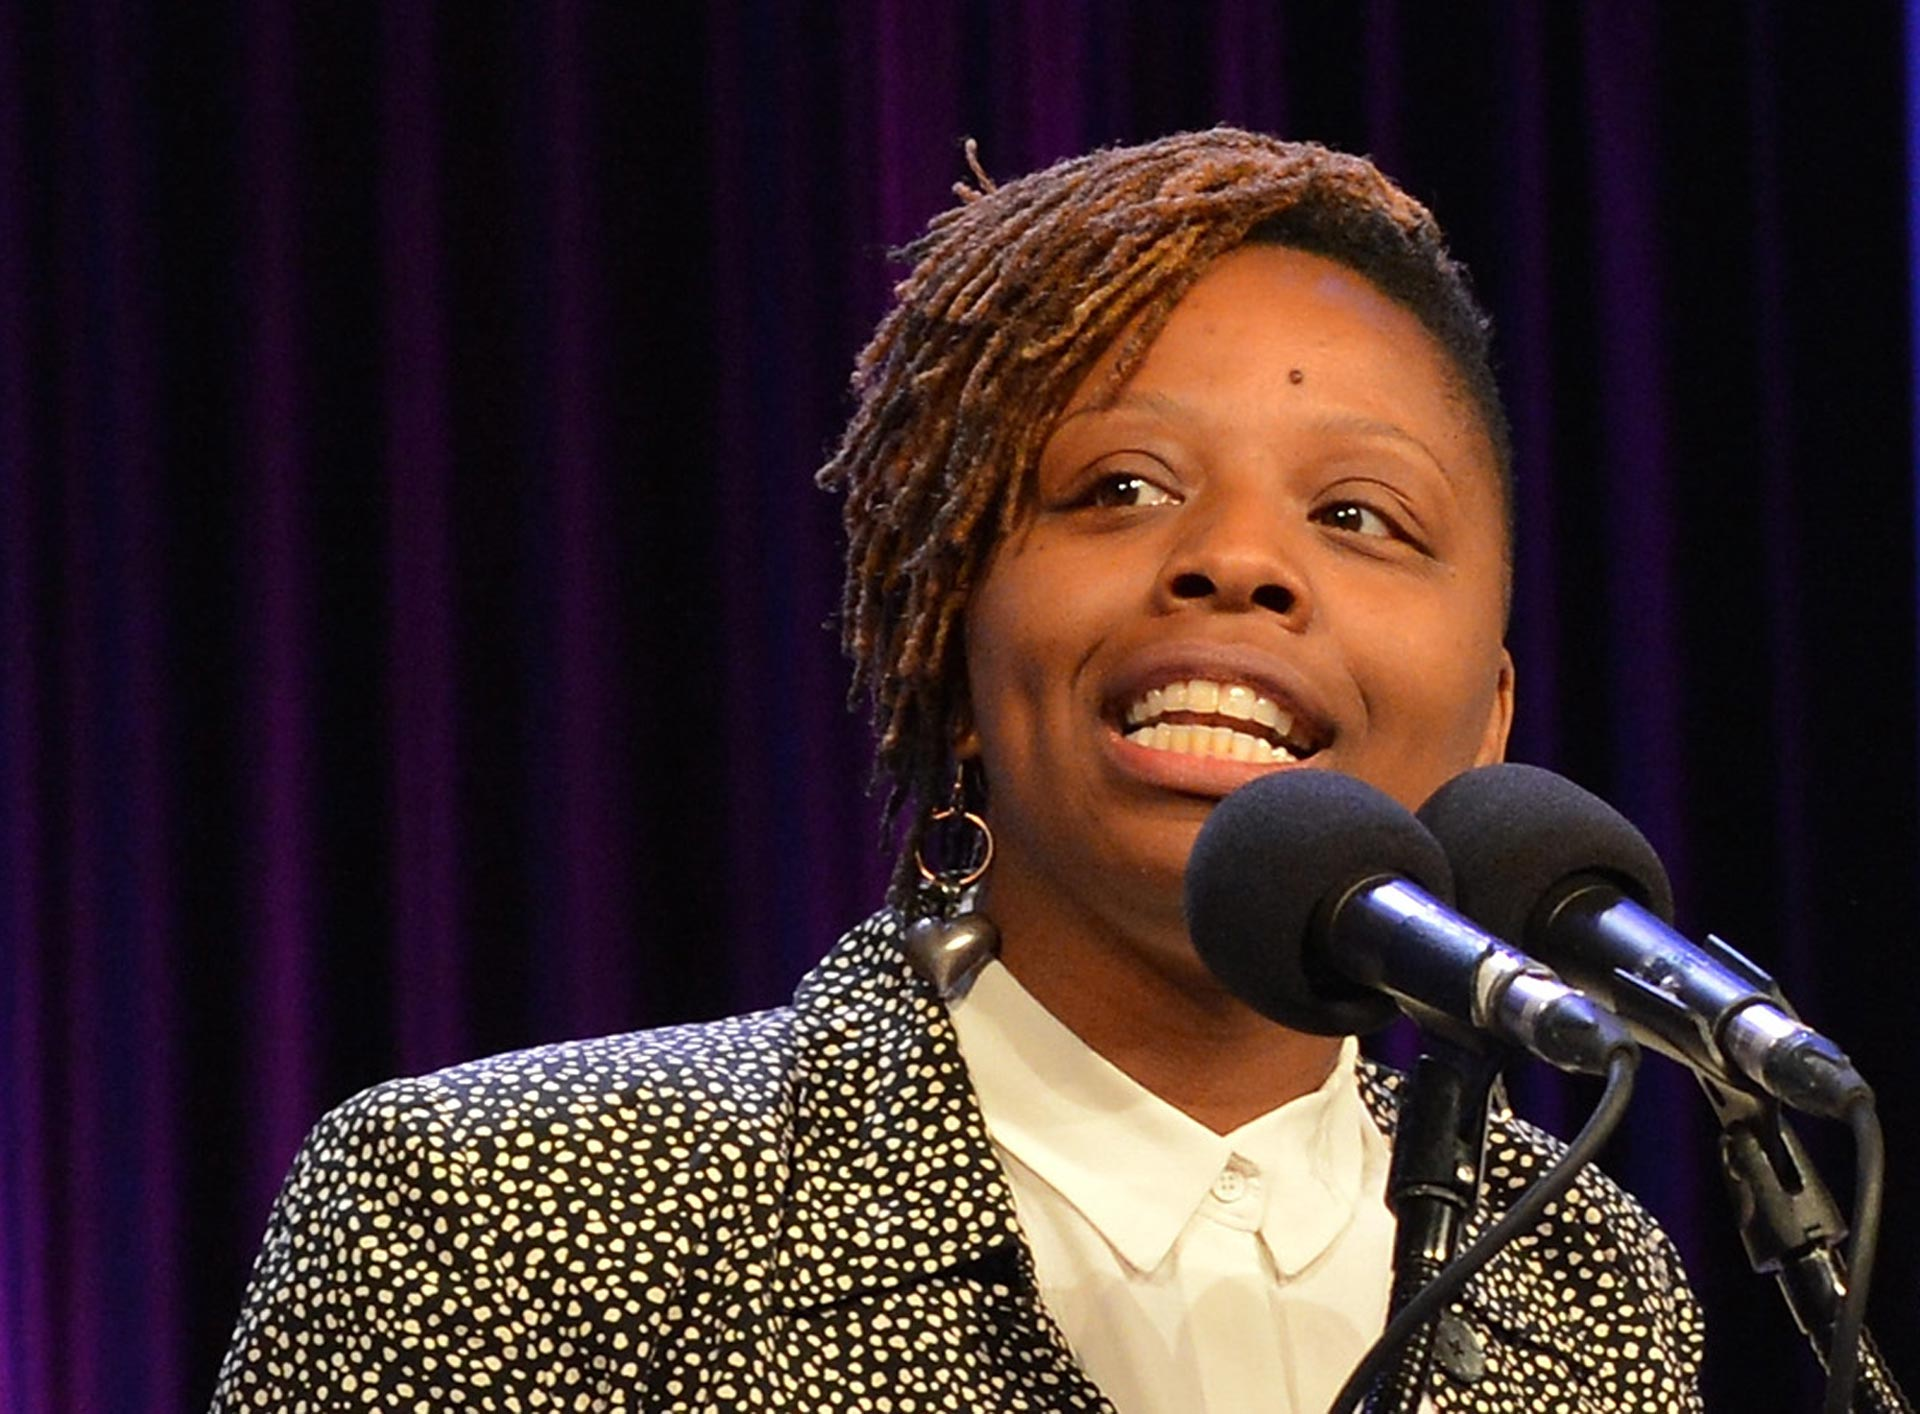 Patrisse Cullors speaks at The New York Women's Foundation last year.